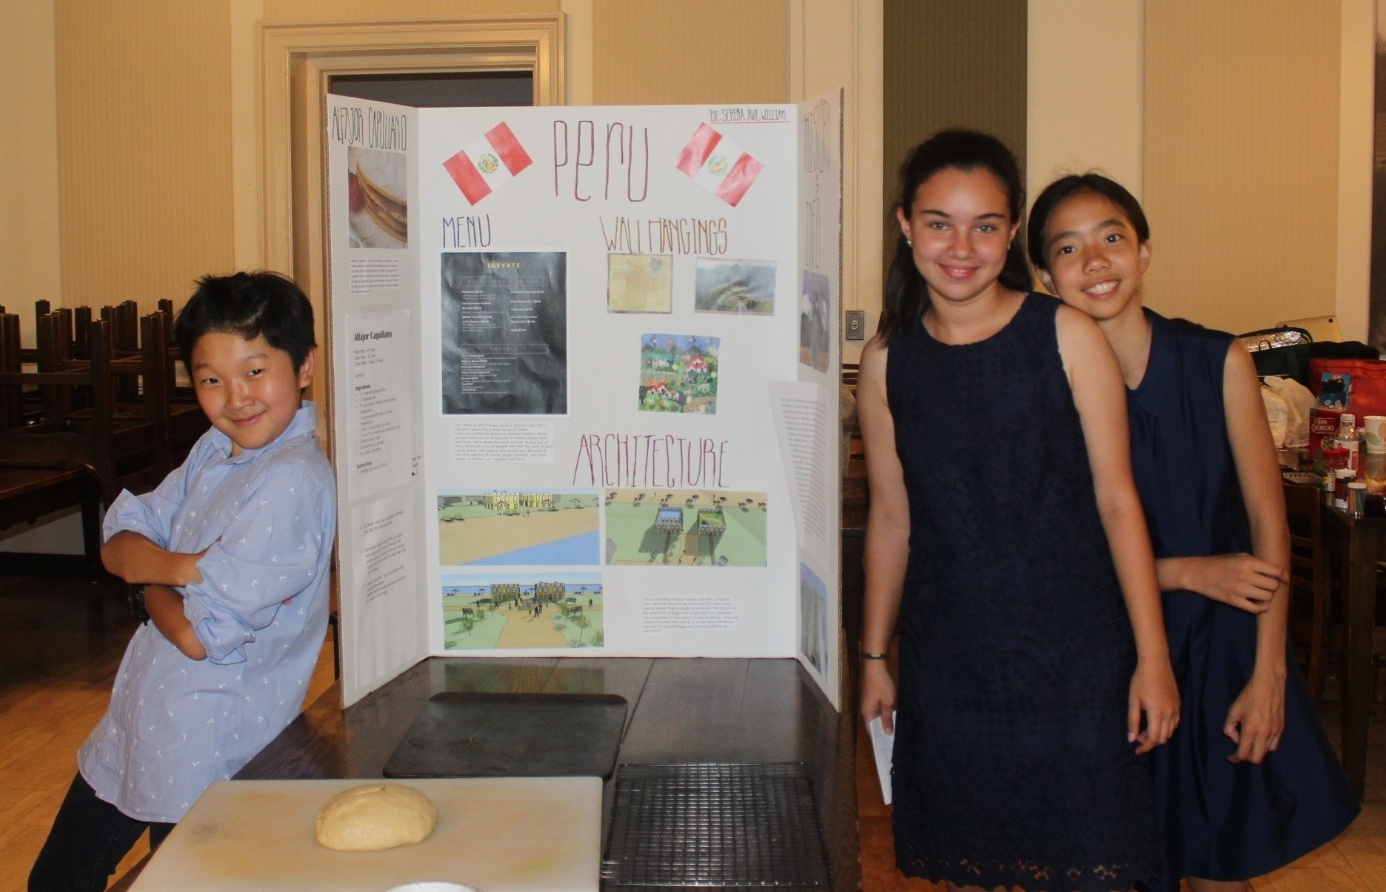 William, Ava, and Serena proudly present their Peruvian hotel and restaurant design at the Experimentory Final Showcase.